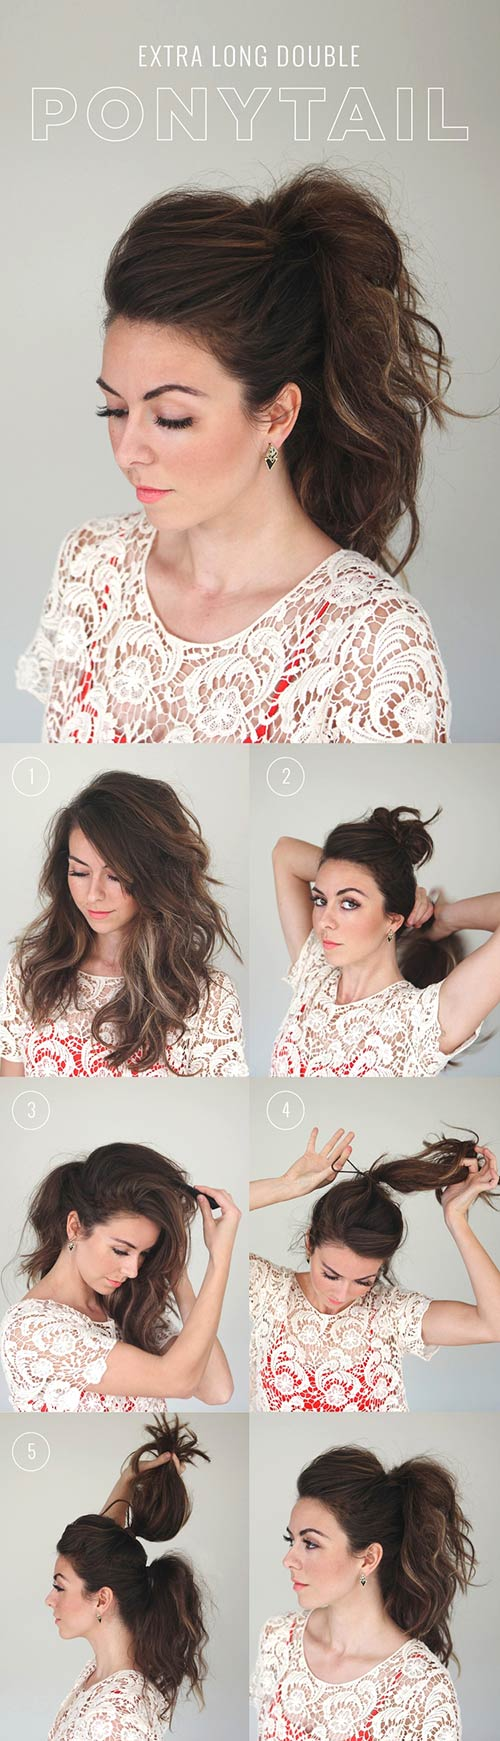 Extra-Long-Double-Ponytail Awesome Hairstyles For Girls With Long Hair